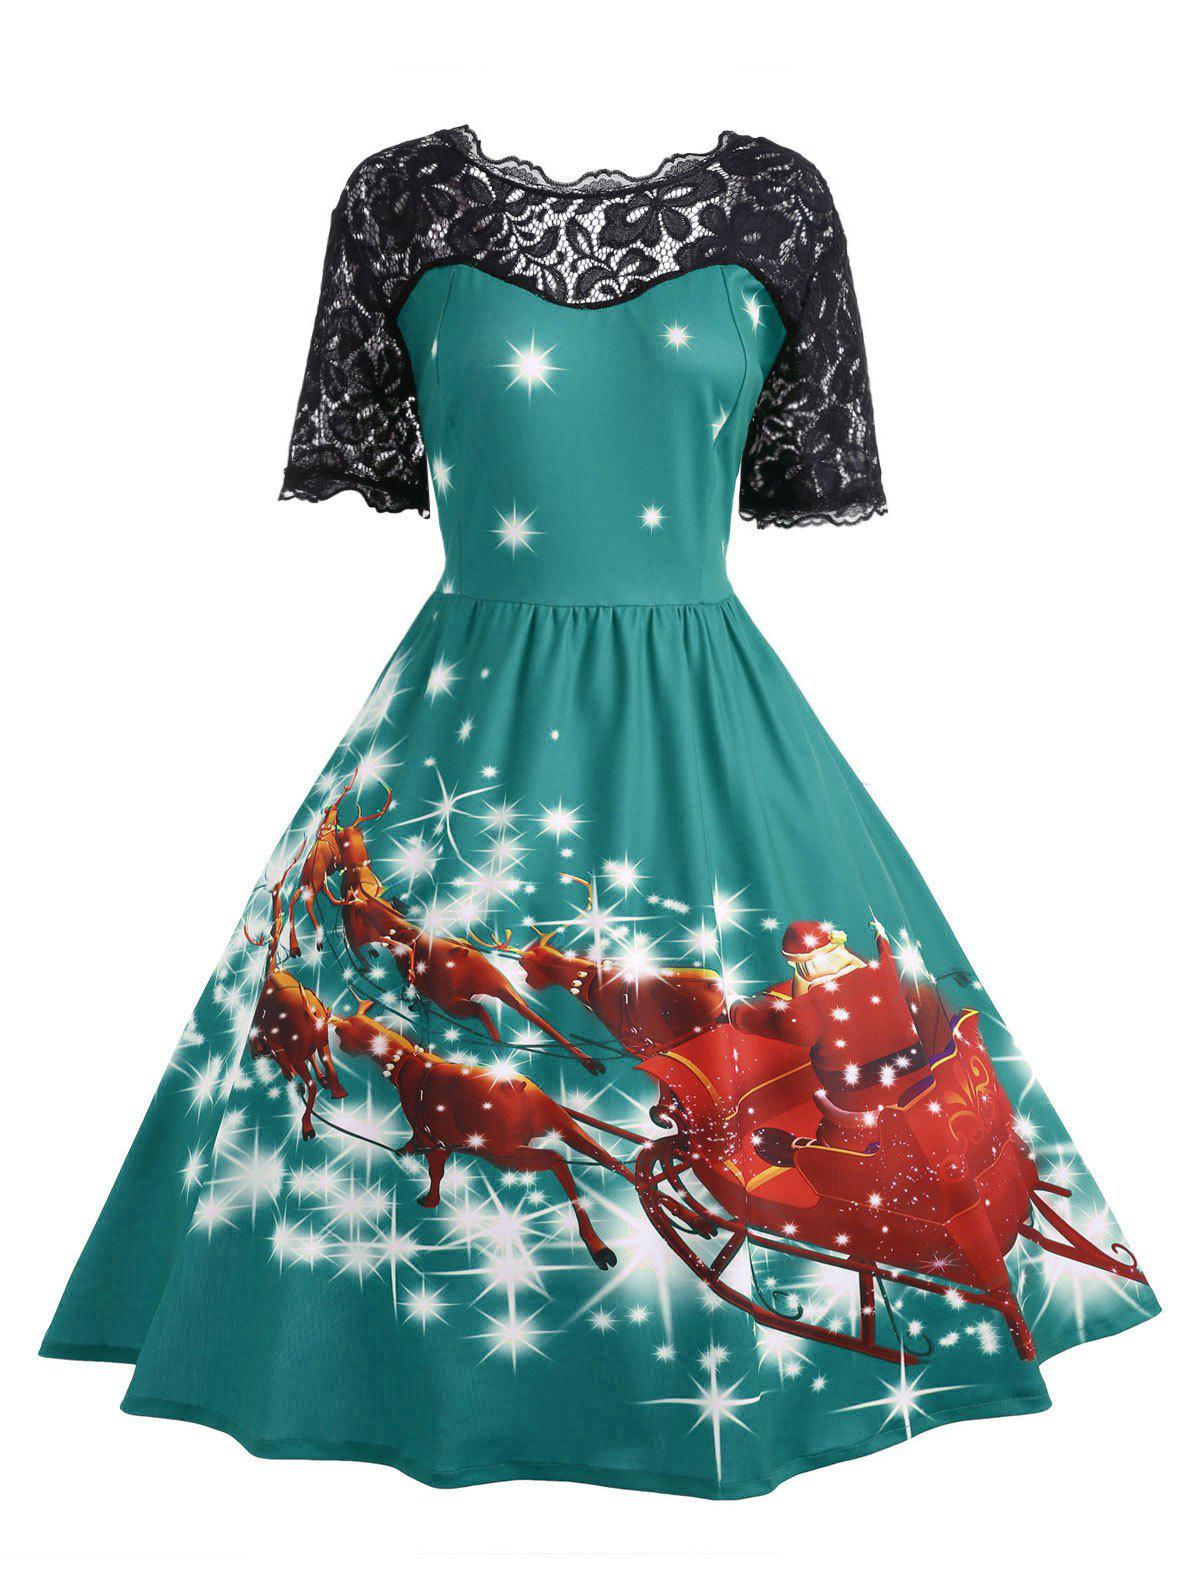 Plus Size Lace Panel Midi Father Christmas Party DressWOMEN<br><br>Size: 3XL; Color: GREEN; Style: Cute; Material: Cotton Blend,Polyester; Silhouette: Ball Gown; Dresses Length: Mid-Calf; Neckline: Scoop Neck; Sleeve Length: Short Sleeves; Embellishment: Hollow Out,Lace,Vintage; Pattern Type: Animal,Character,Print,Star; With Belt: No; Season: Fall,Winter; Weight: 0.4700kg; Package Contents: 1 x Dress;